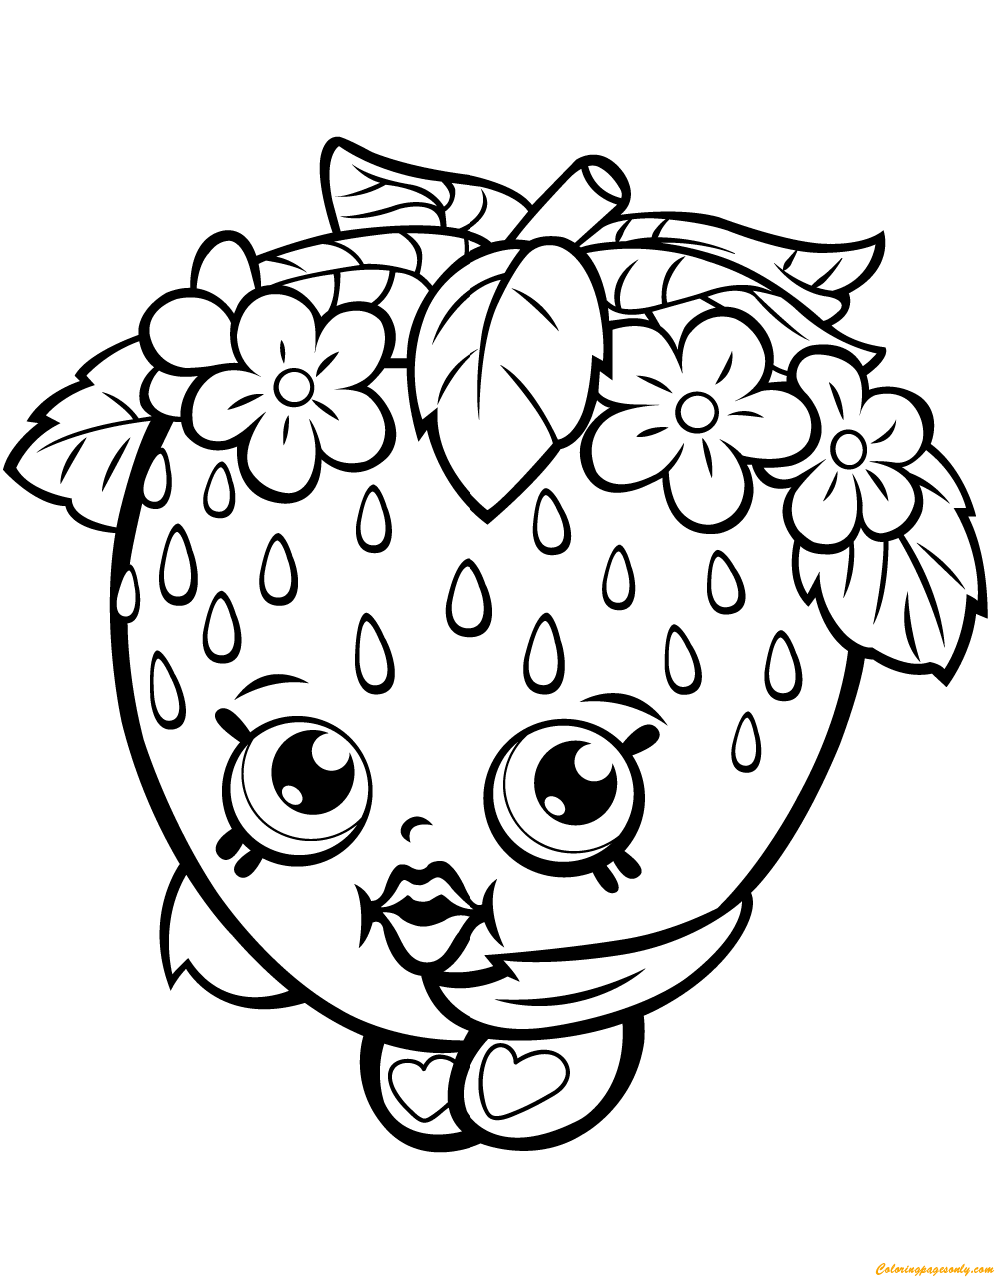 Strawberry Kiss Shopkin Season 1 Coloring Page Free